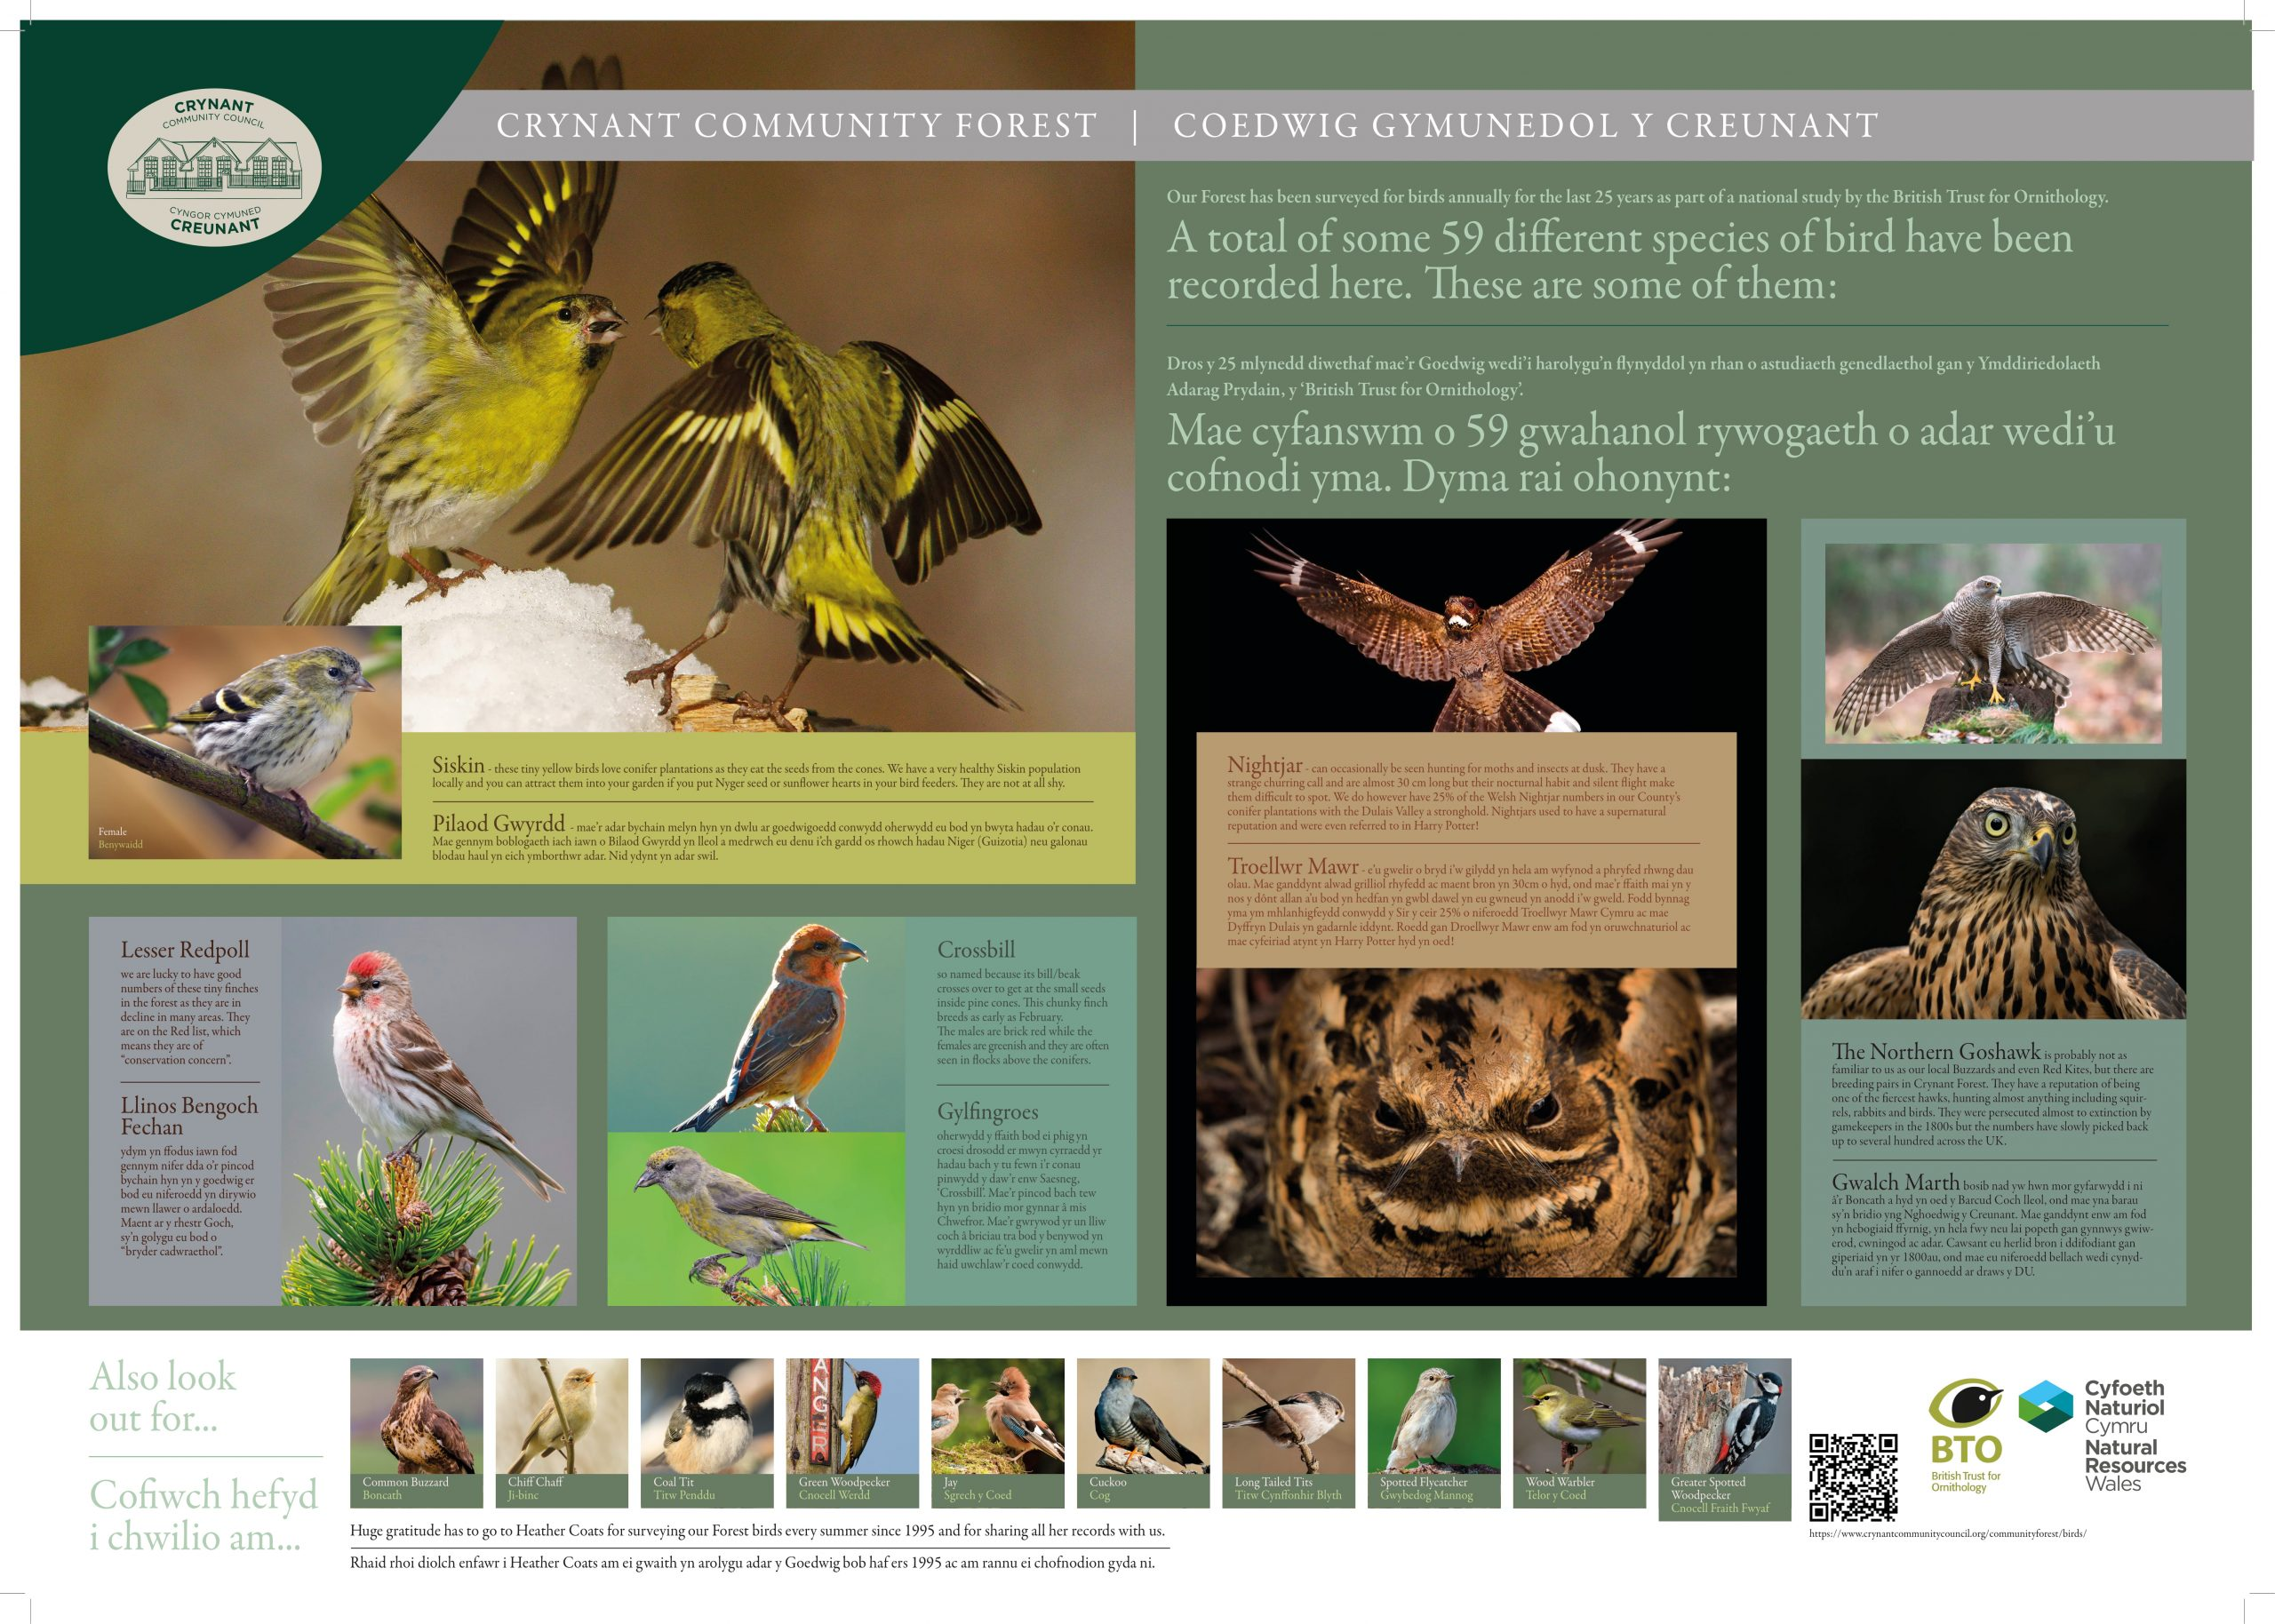 Picture describing the birds found along Forest Walks. Panel has five main blocks depicting male and female varieties of: Siskin males competing with wings outstretched. These are small pointed beaked birds with light yellow chests and brown wings with a yellow horizontal bands. A smaller picture depicts a female on a branch with speckled white chest and two bands of yellow on brown wings; Nightjar in flight with wings outstretched. It is a brown larger bird with white bands at the tip of its wings and bottom of tail feathers. A second picture is a close up of its specked brown face; The Northern Goshawk - two pictures with one hawk standing atop a tree stump, wings open. This is a speckled light brown bird of prey. Second picture shows a close up of the face; Lesser Redpoll - a red head crested smaller bird with pointed orange bead, white banded brown wings and a white chest. Has small splashes of red at cheek areas; Crossbill - an orange and brown bird with larger slight hooked beak. Orange chest and mottled brown wing feathers.